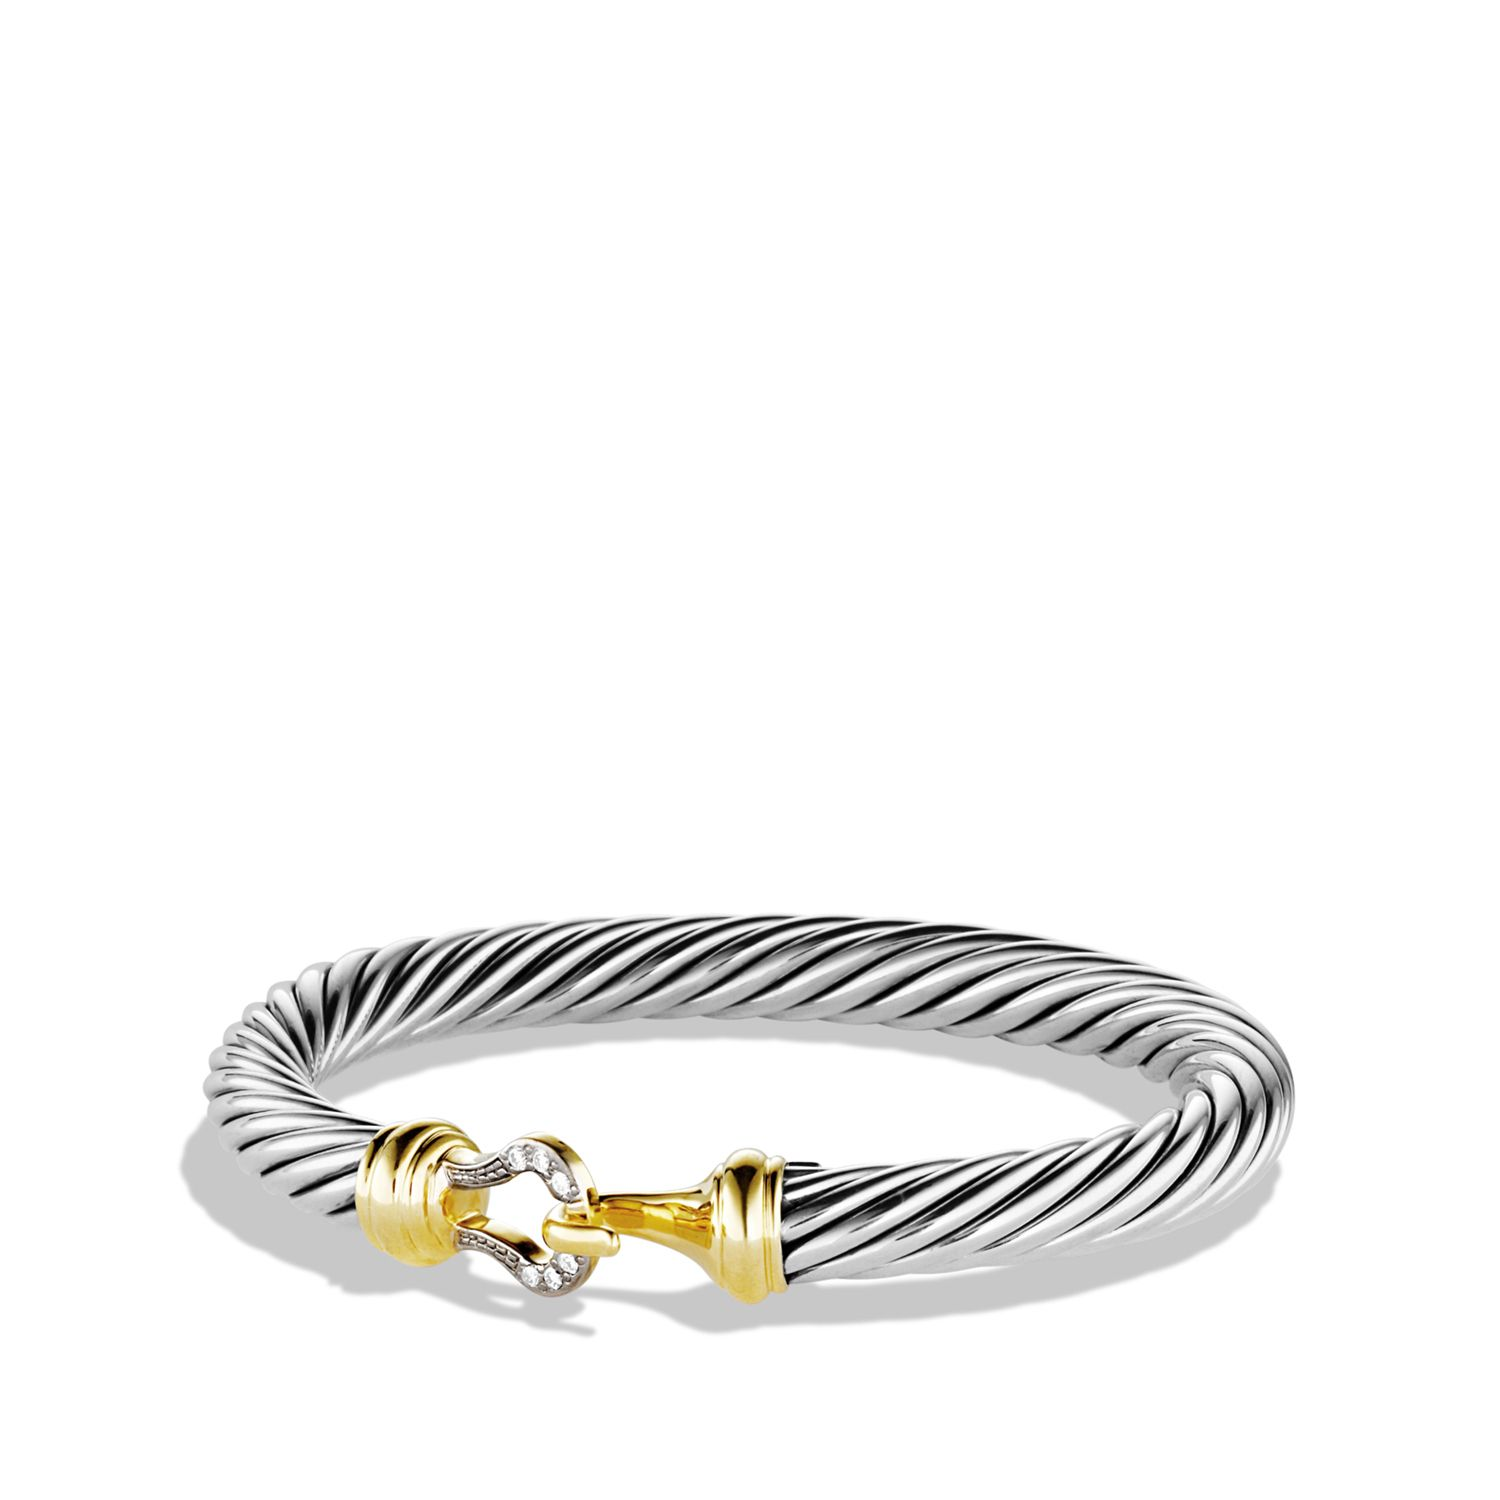 Cable Buckle Bracelet With Diamonds And Gold Jewelry